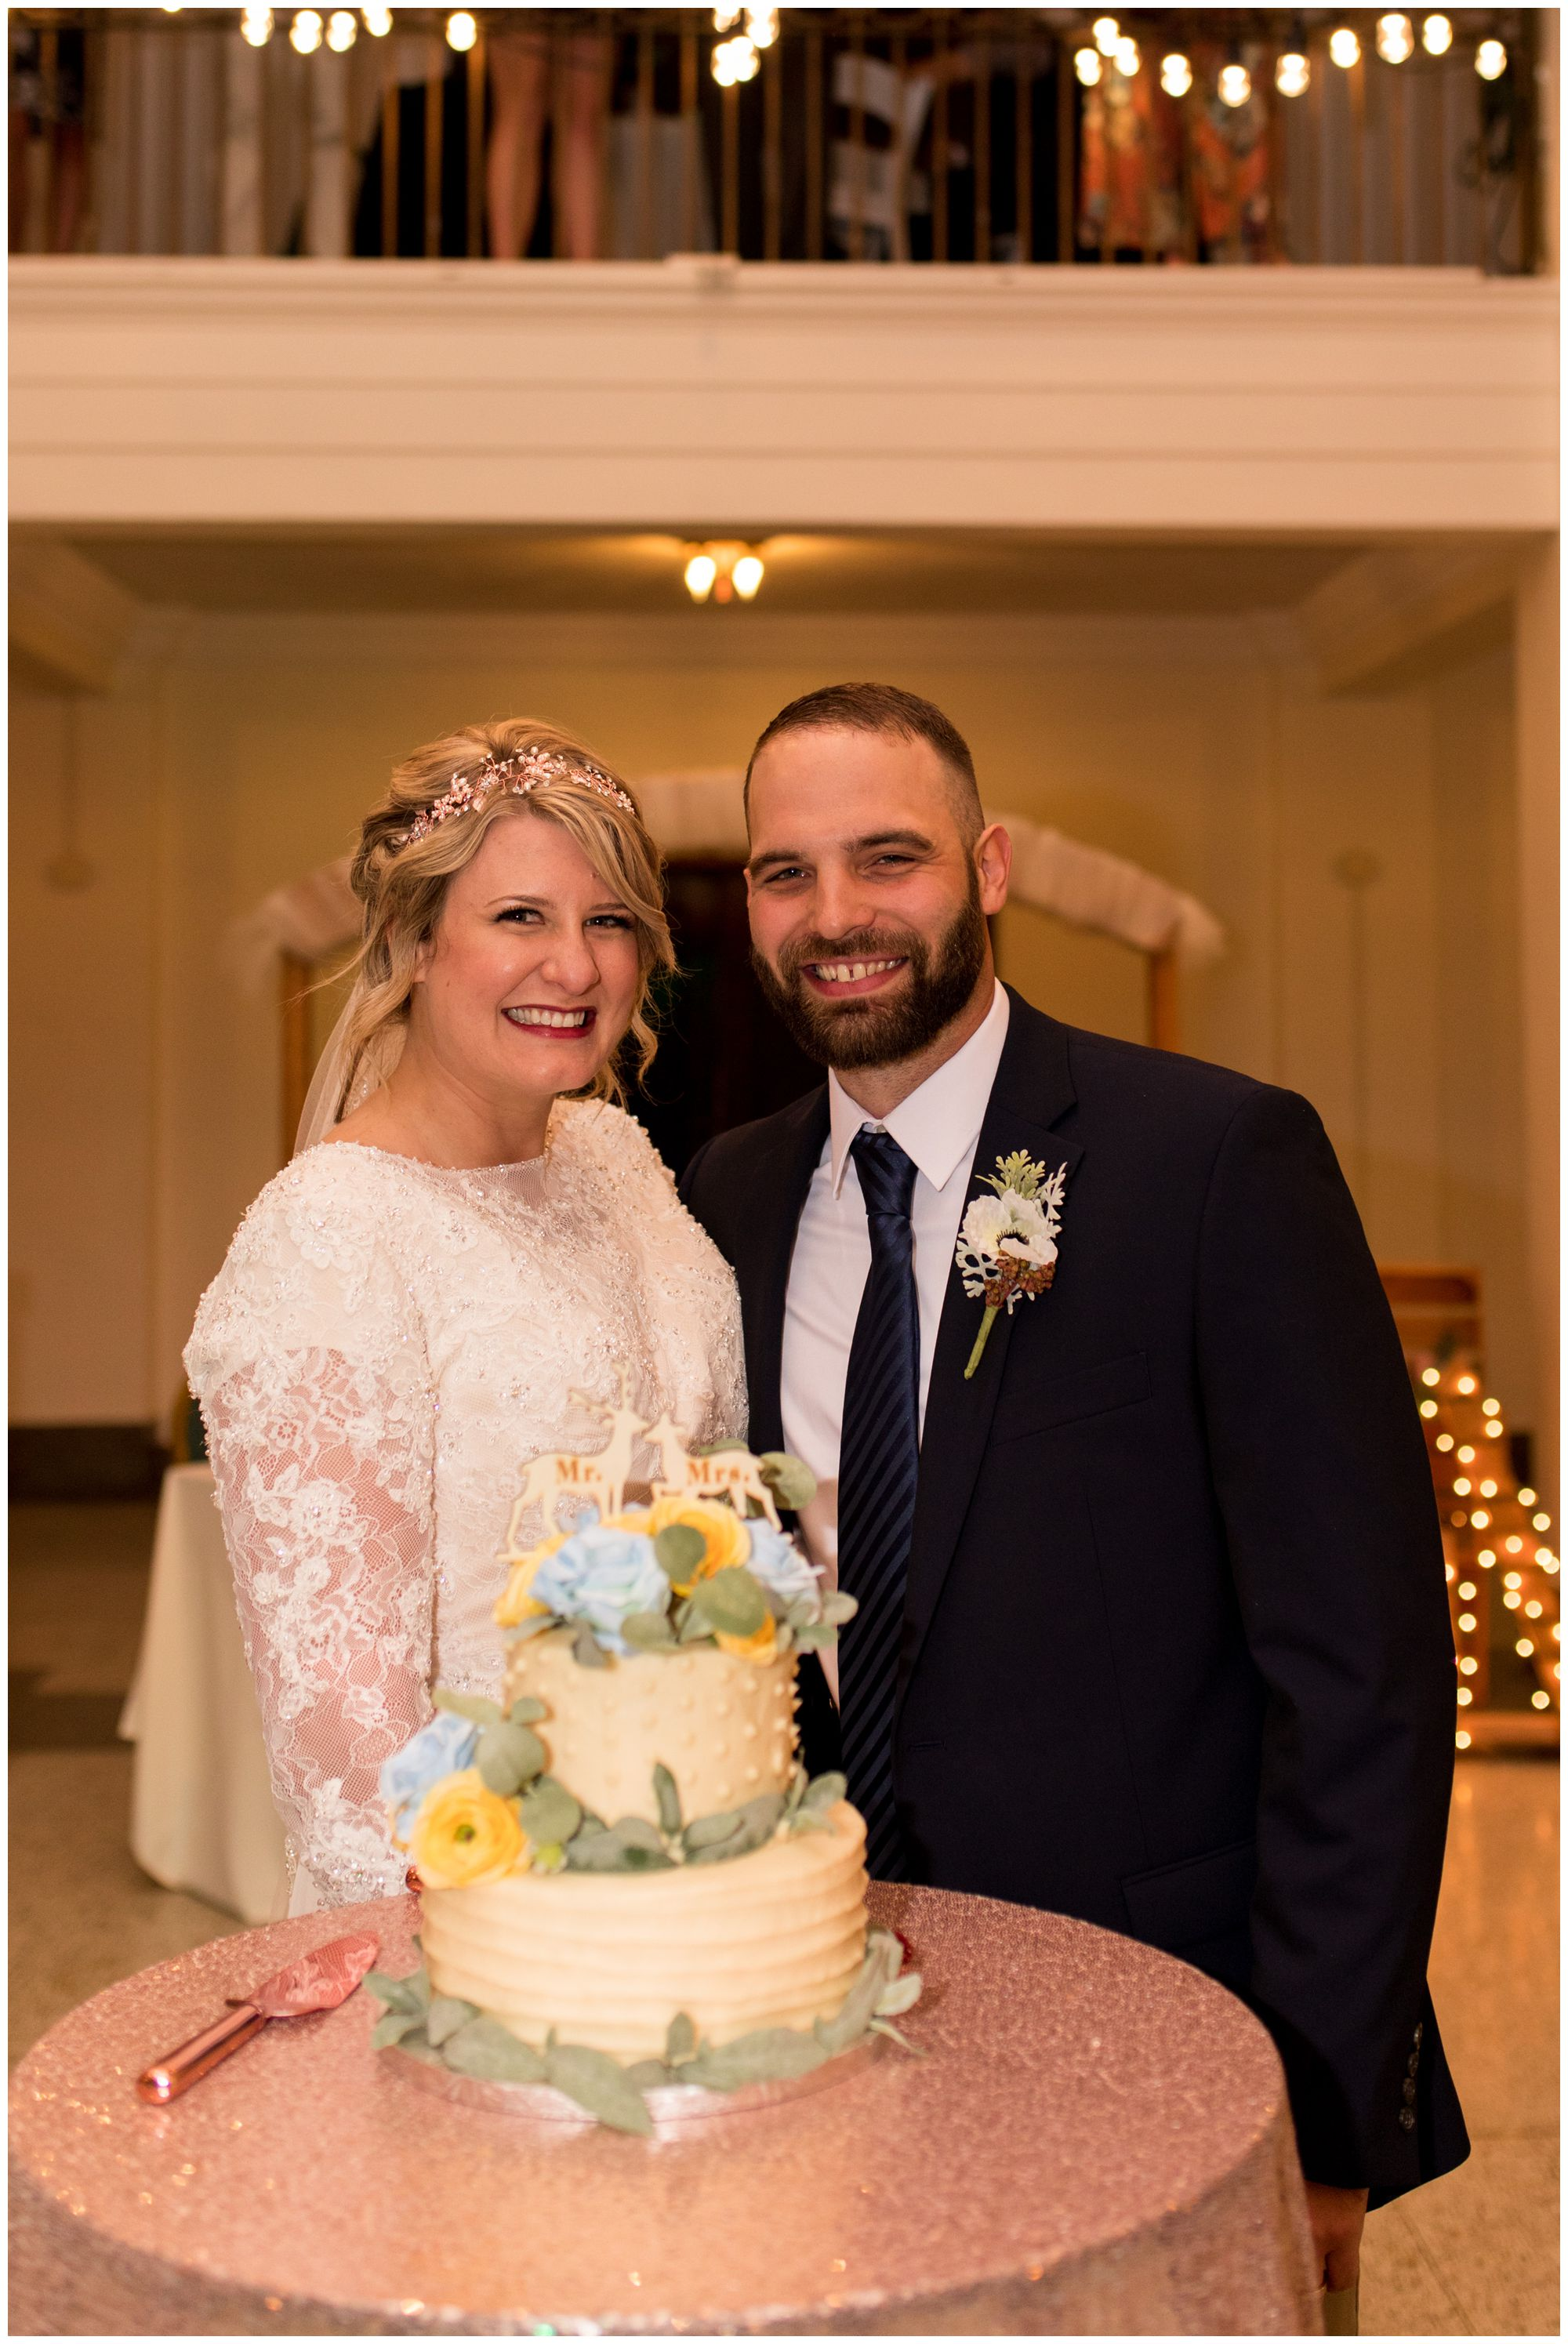 bride and groom with cake at Cornerstone Center for the Arts in Muncie Indiana